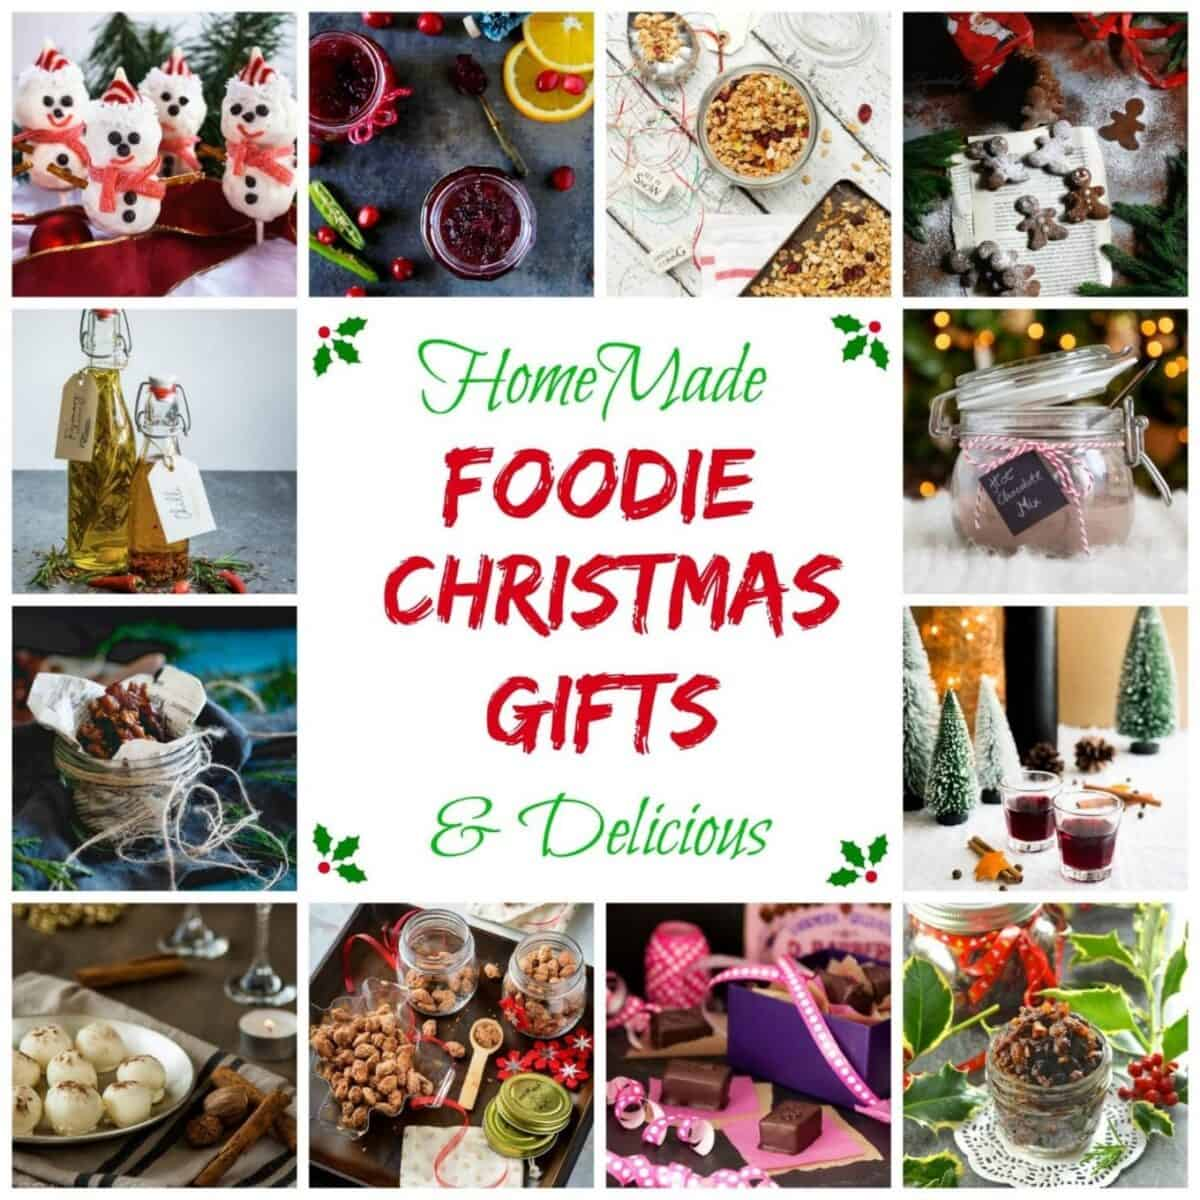 A guide to homemade christmas food gifts littlesugarsnaps for Food gifts to make for christmas presents